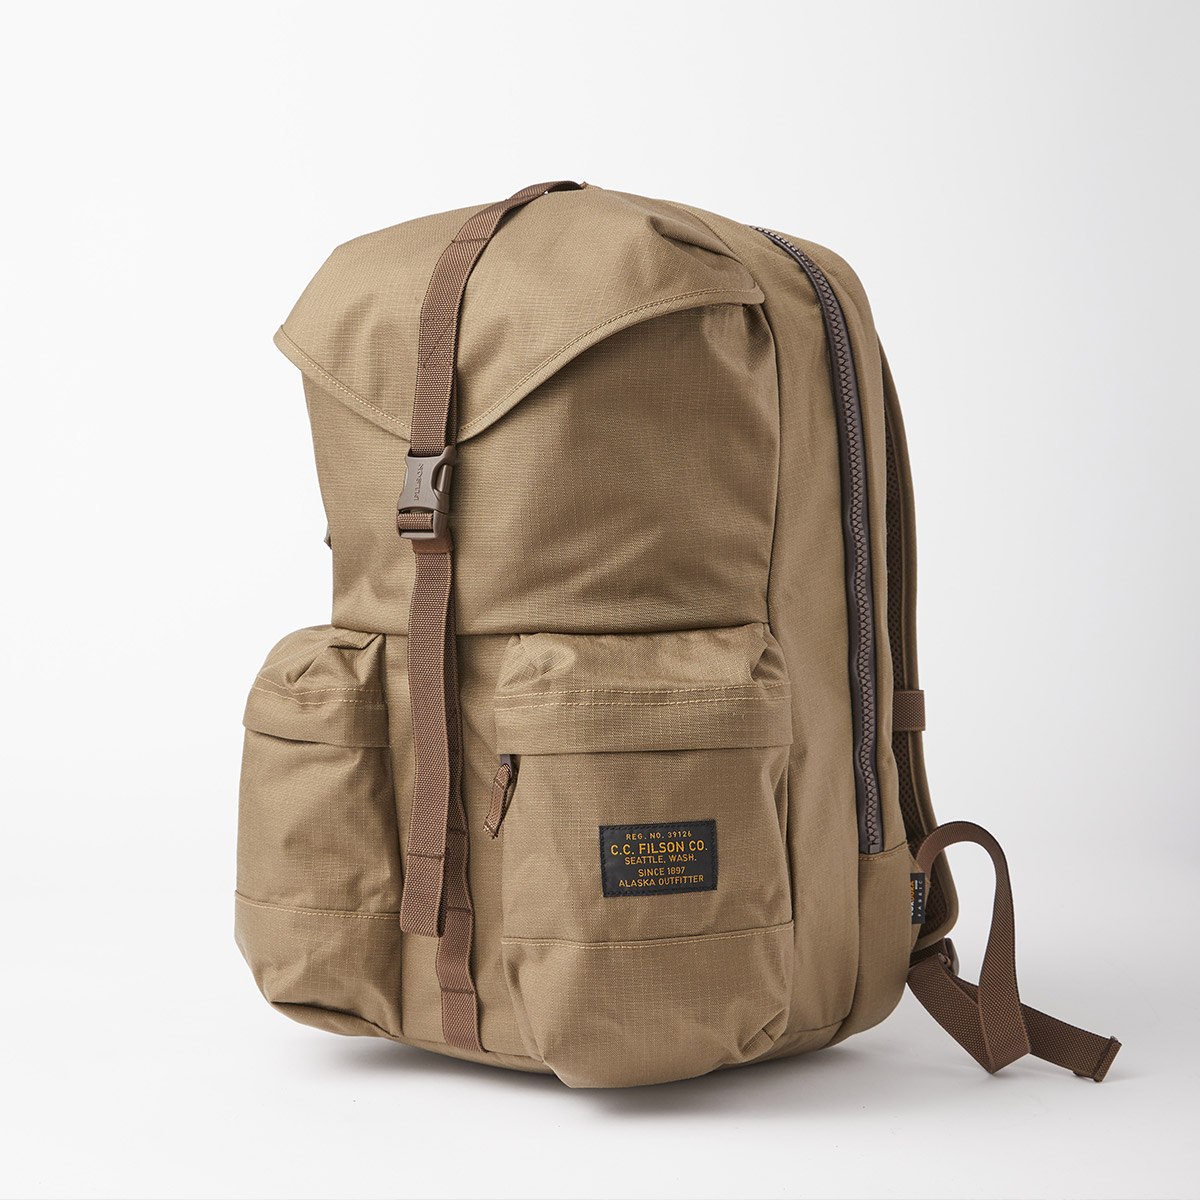 Filson Ripstop Backpack 20115929 Field Tan, lightweight and durable backpack